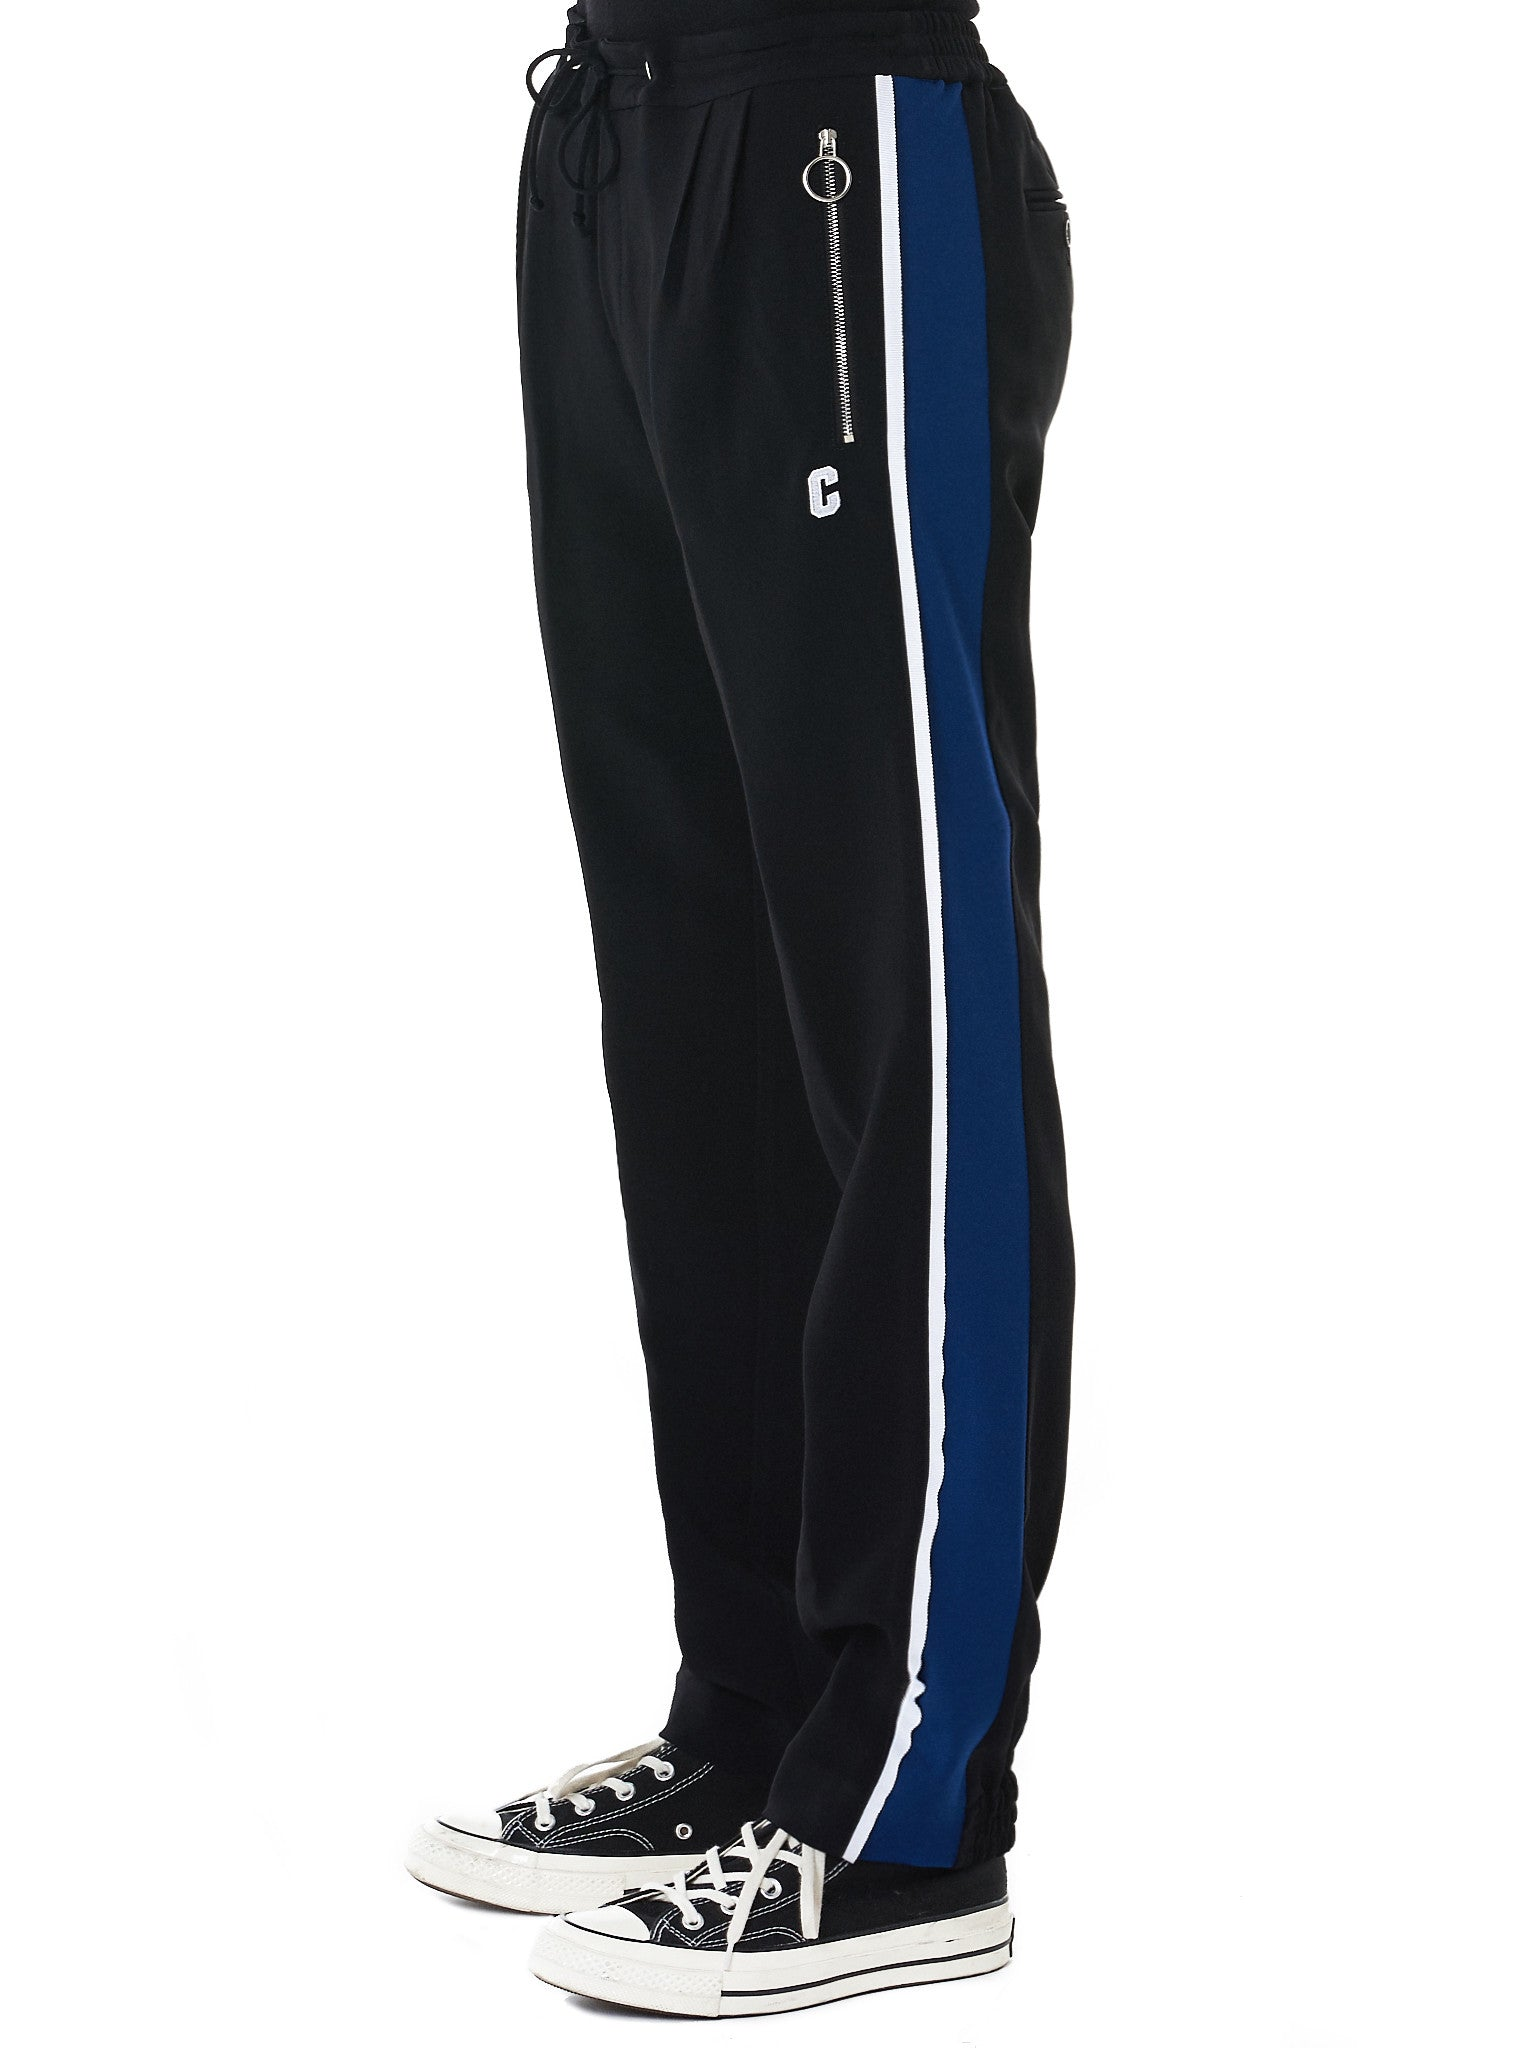 Tim Coppens- HLorenzo track pants side view